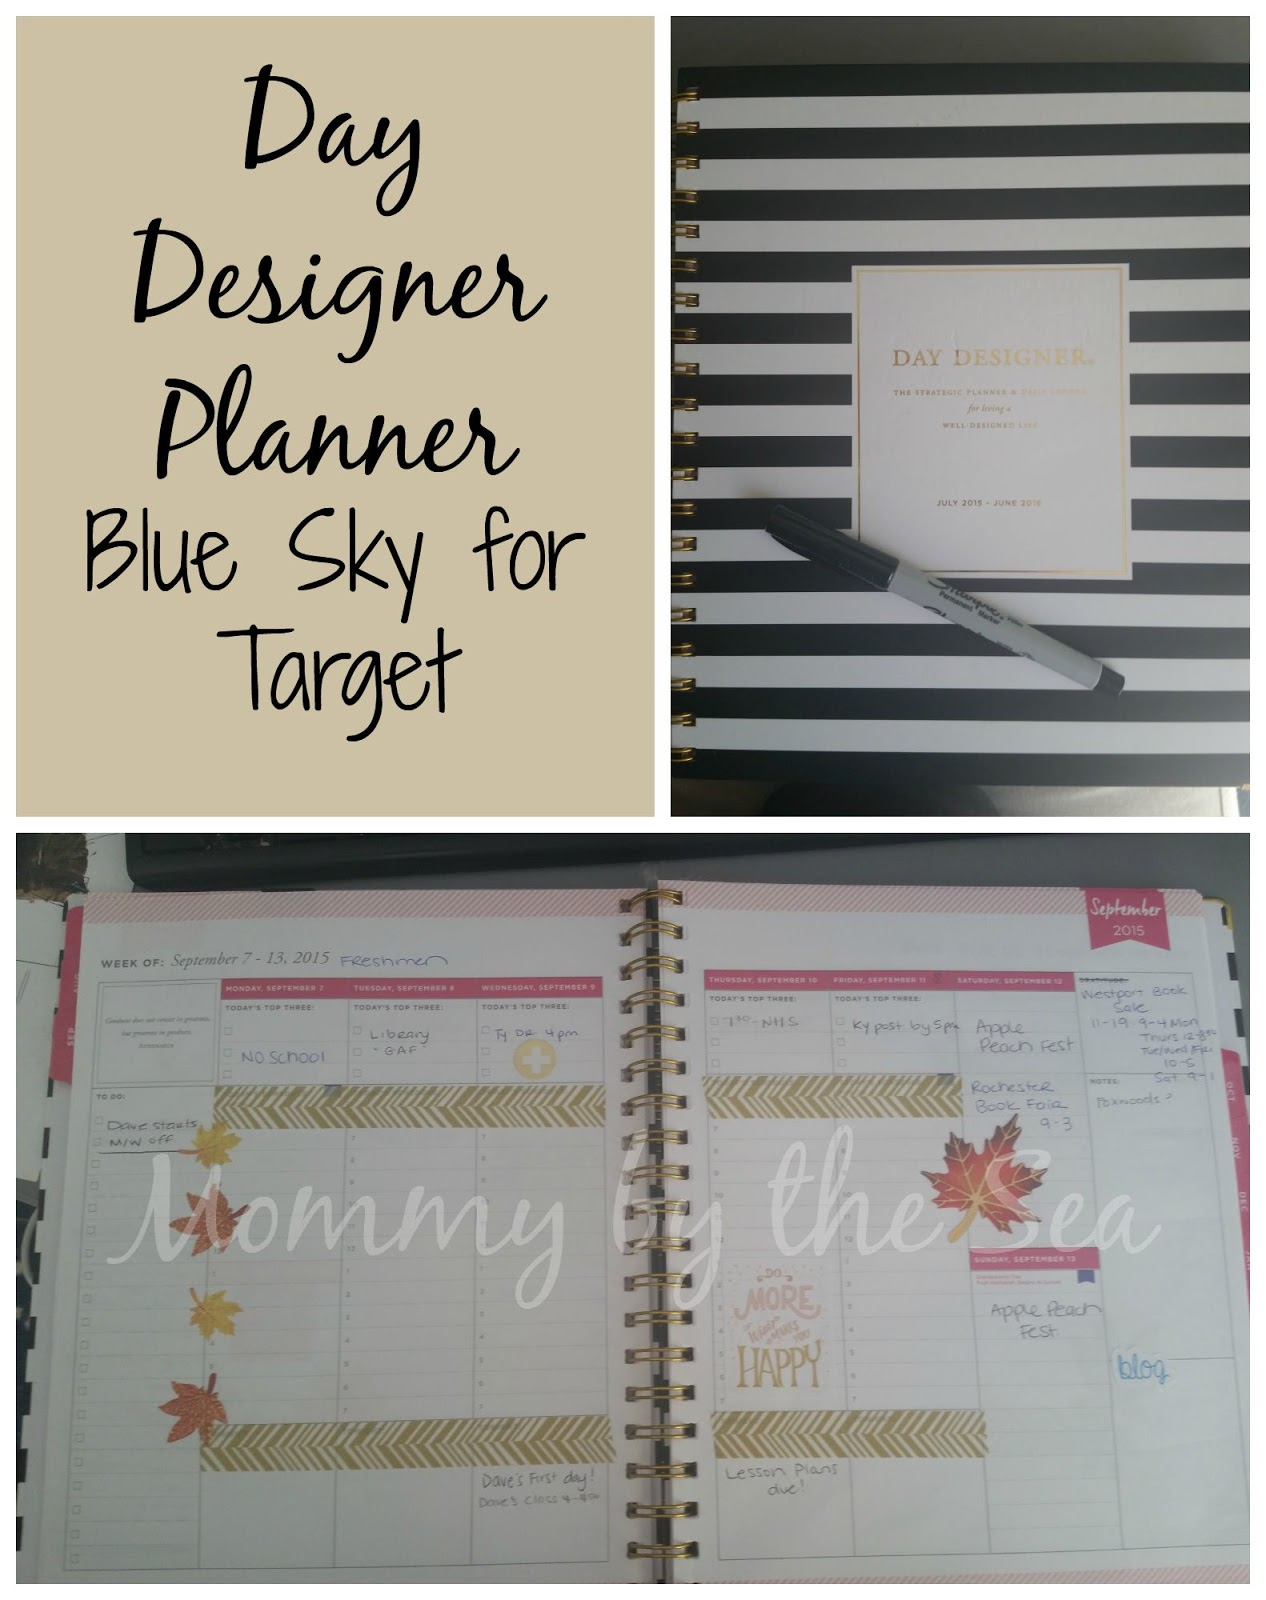 image about Day Designer for Target named The Active Giffs: Blue Sky for Concentrate Working day Designer Planner